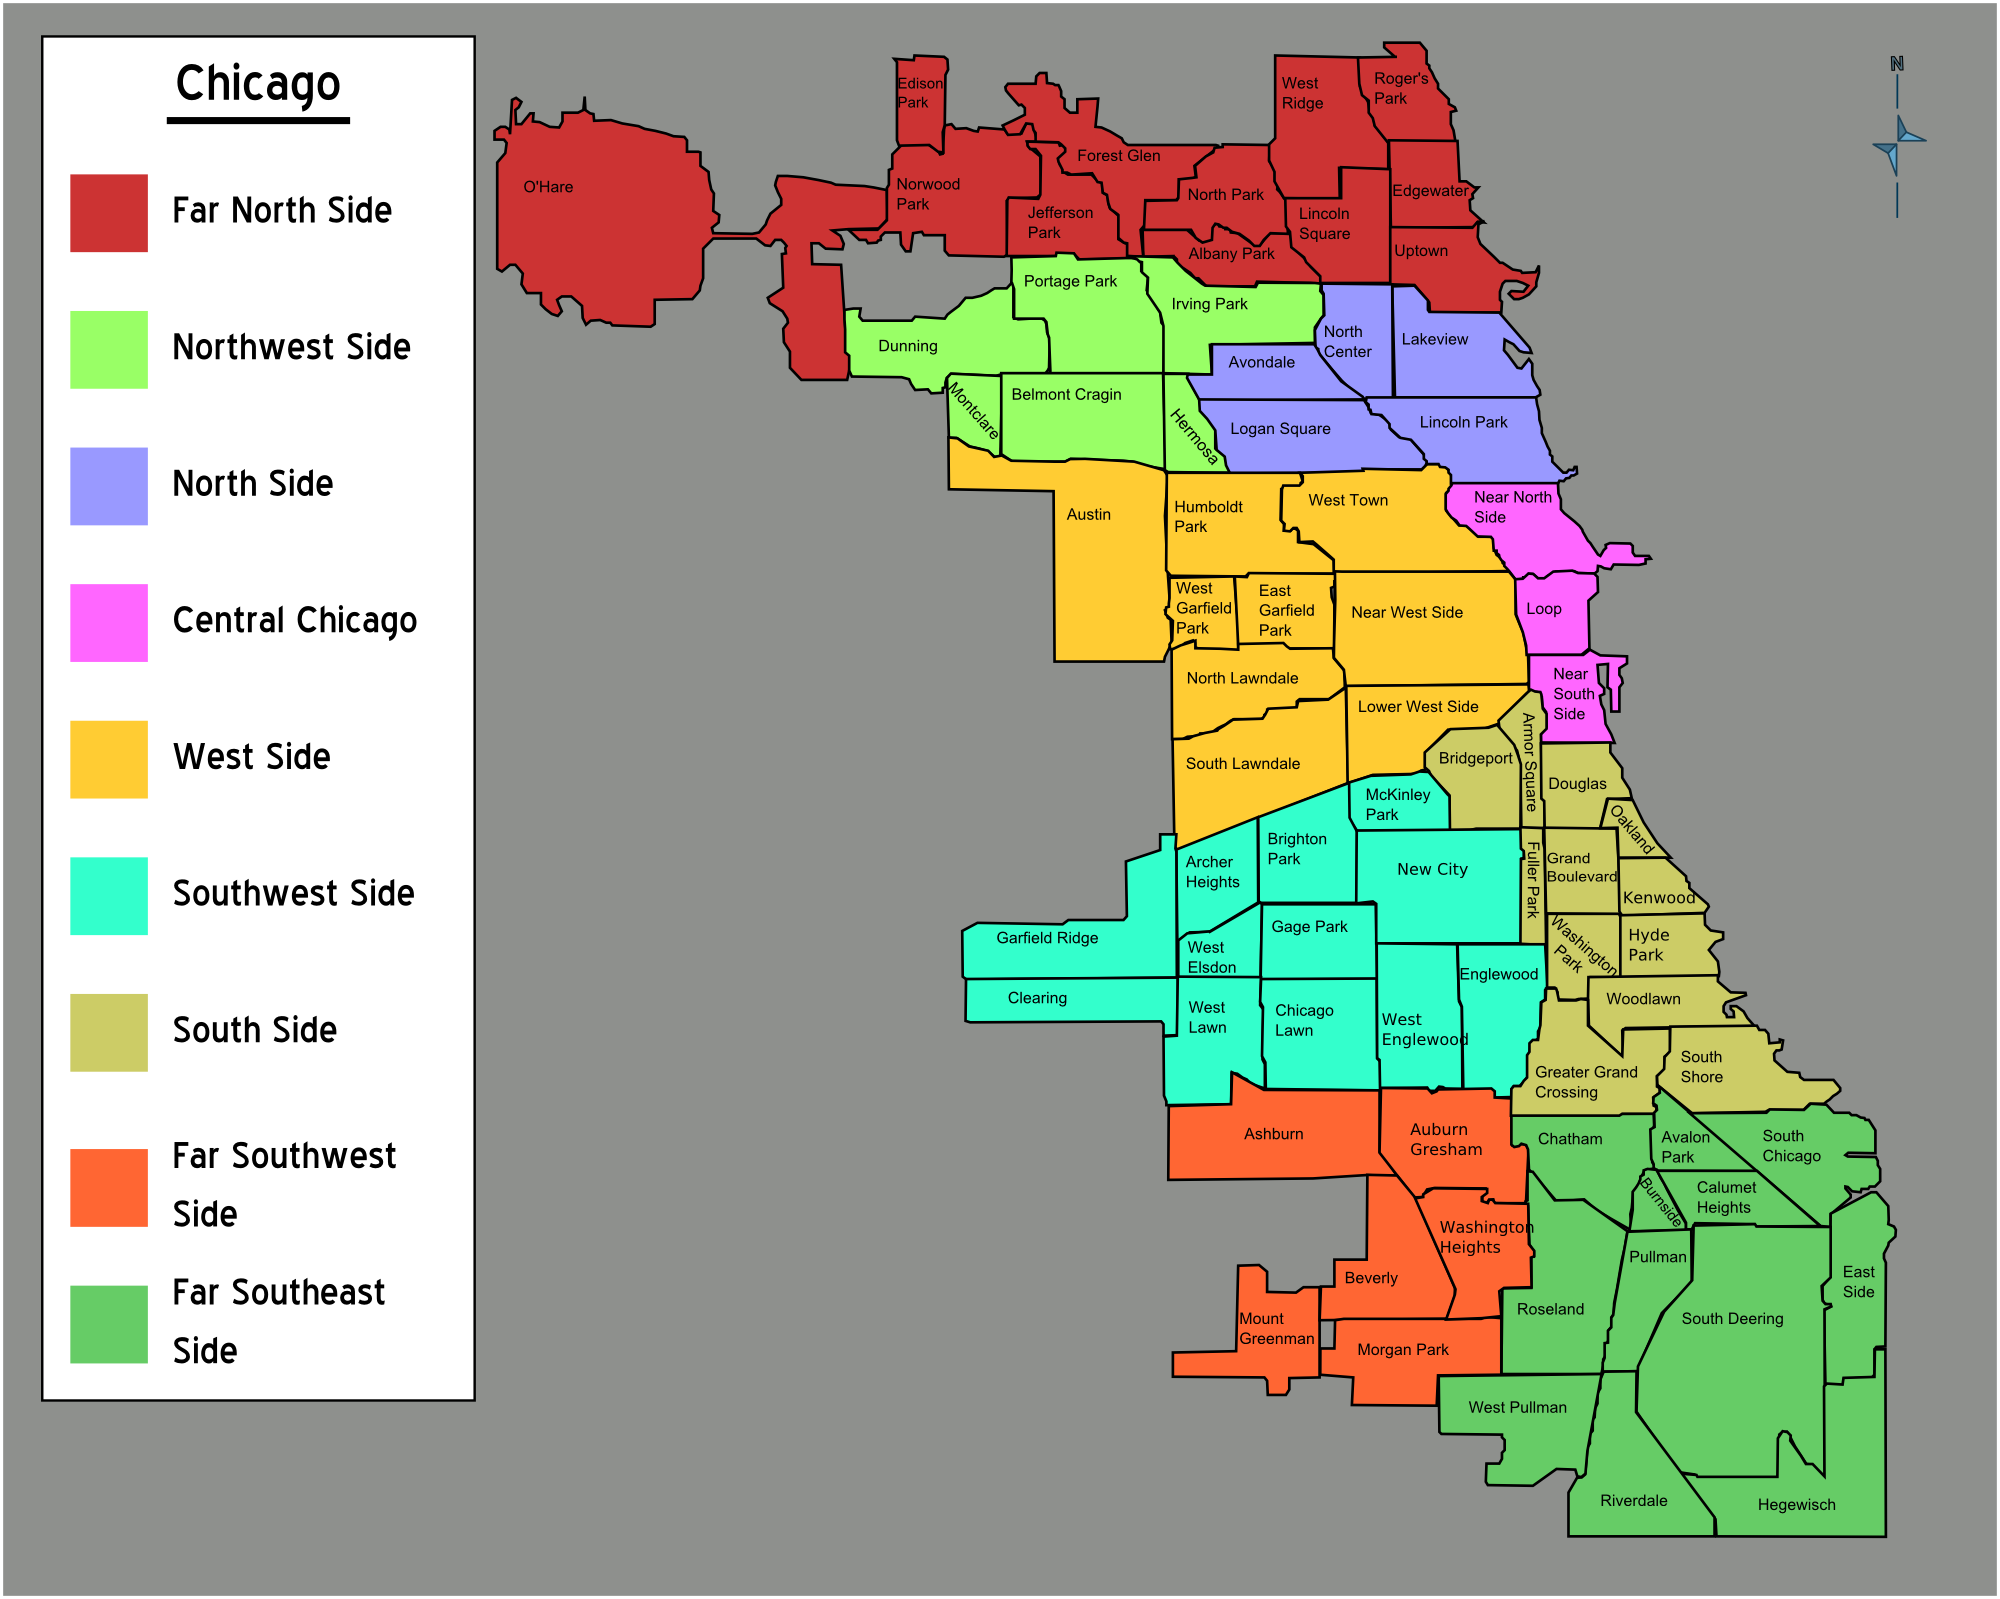 Unled Areas Of Chicago To Avoid Map on map of chicago bad neighborhoods, map of chicago red light districts, map of chicago traffic,